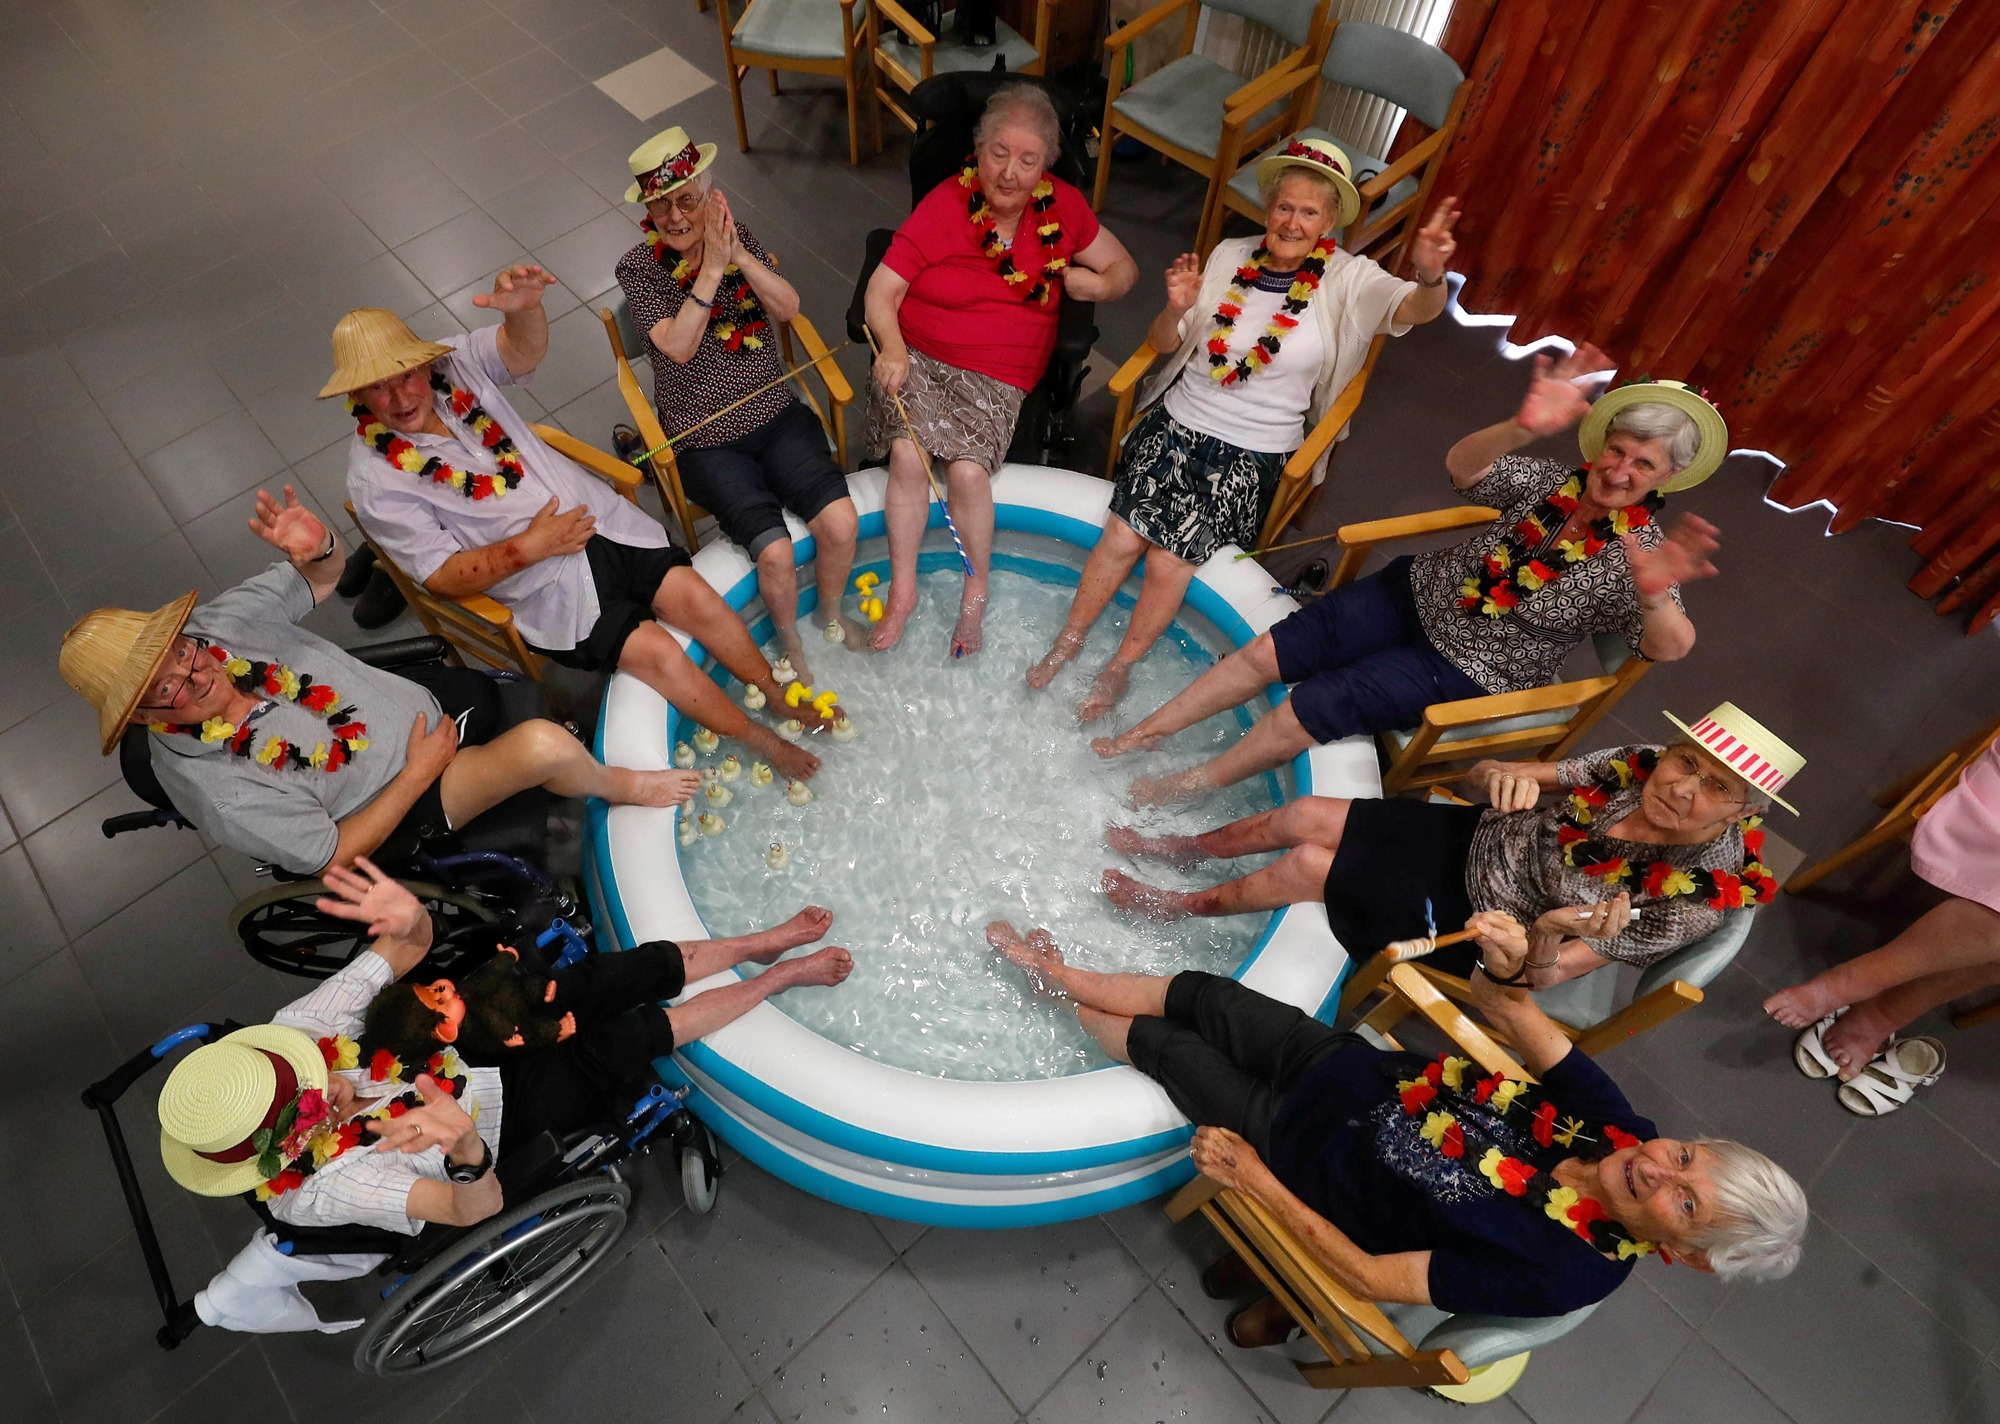 Residents at the Ter Biest house for elderly persons refresh their feet in a pool in this over-head photograph.